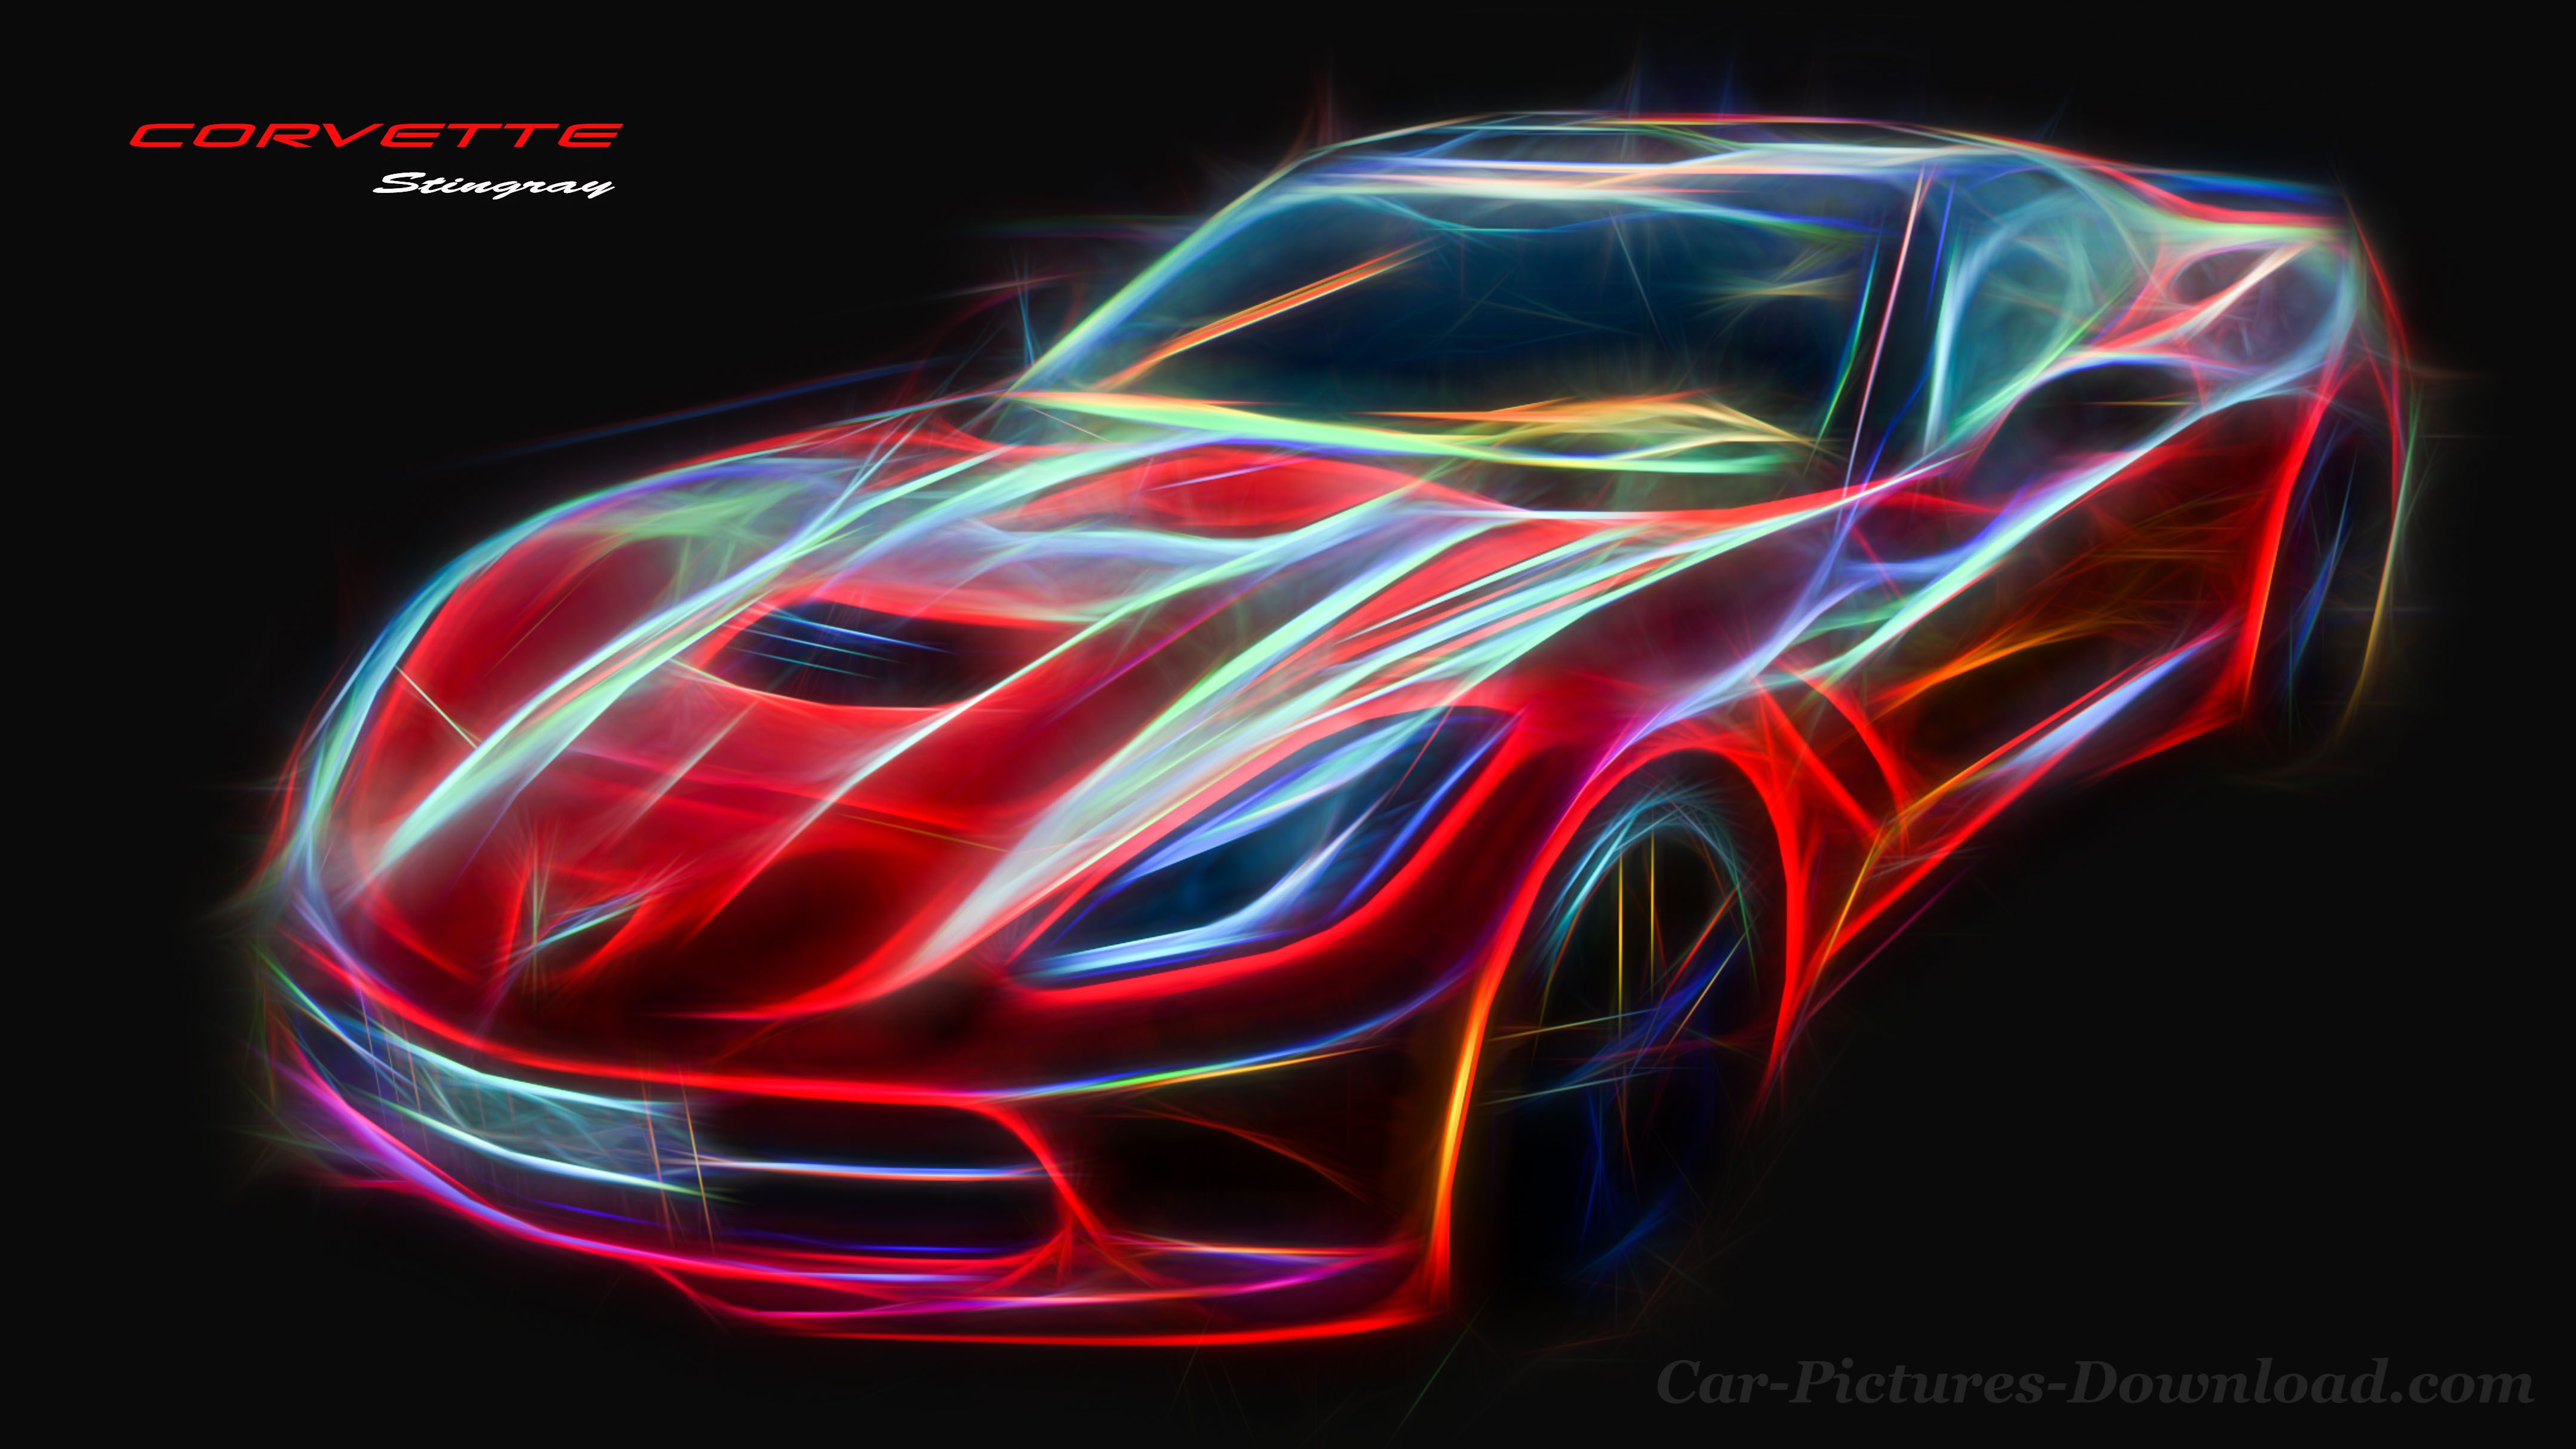 Corvette Wallpapers For All Devices   Best Quality And To 4314x2426